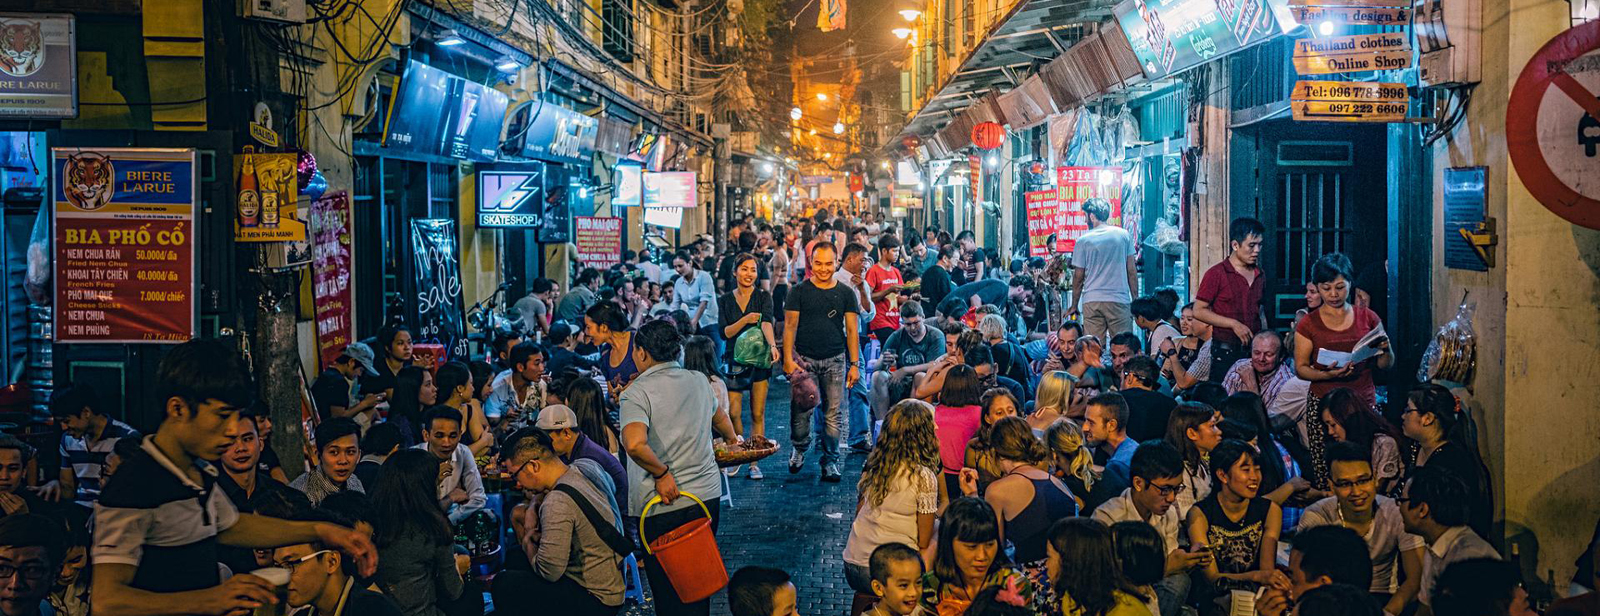 Nightlife in Hanoi's Old Quarter - Source: Zambaka